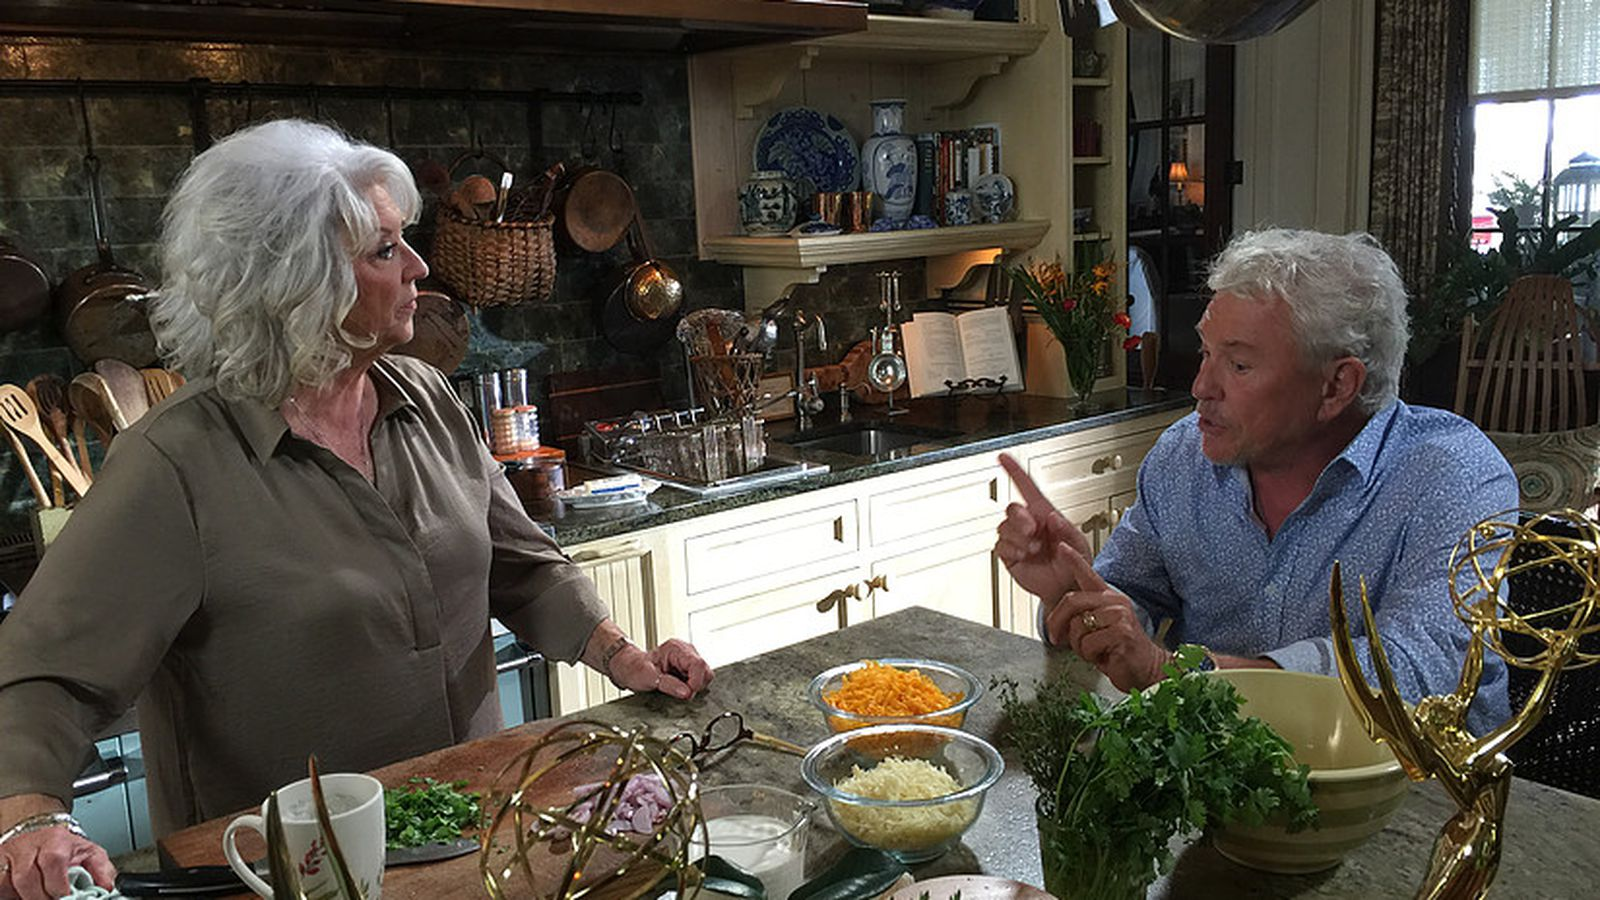 Paula's Home Cooking TV Show: News, Videos, Full Episodes ...